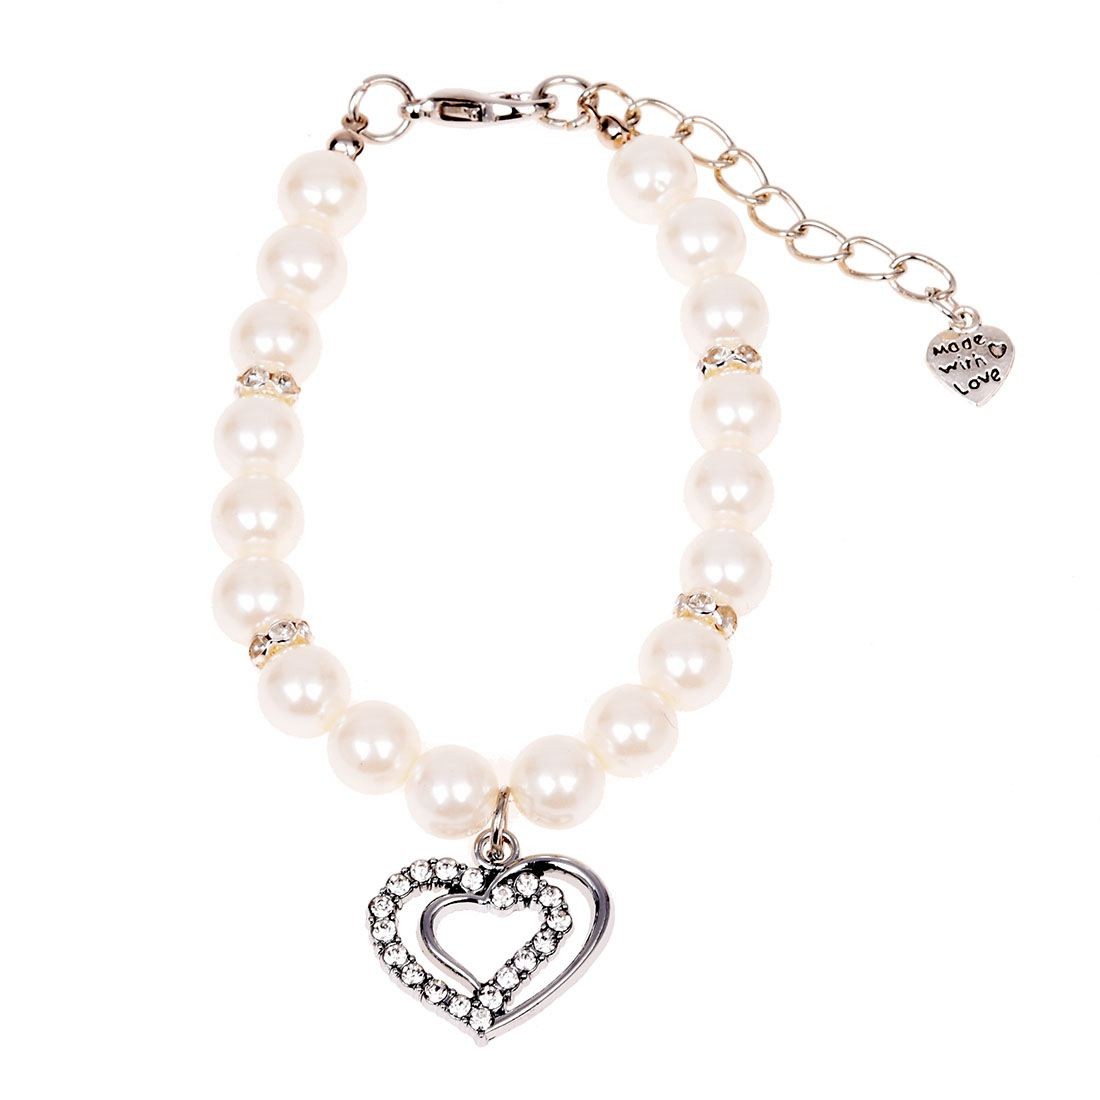 Heart Pendant White Faux Pearl Decor Pet Dog Puppy Collar Necklace S